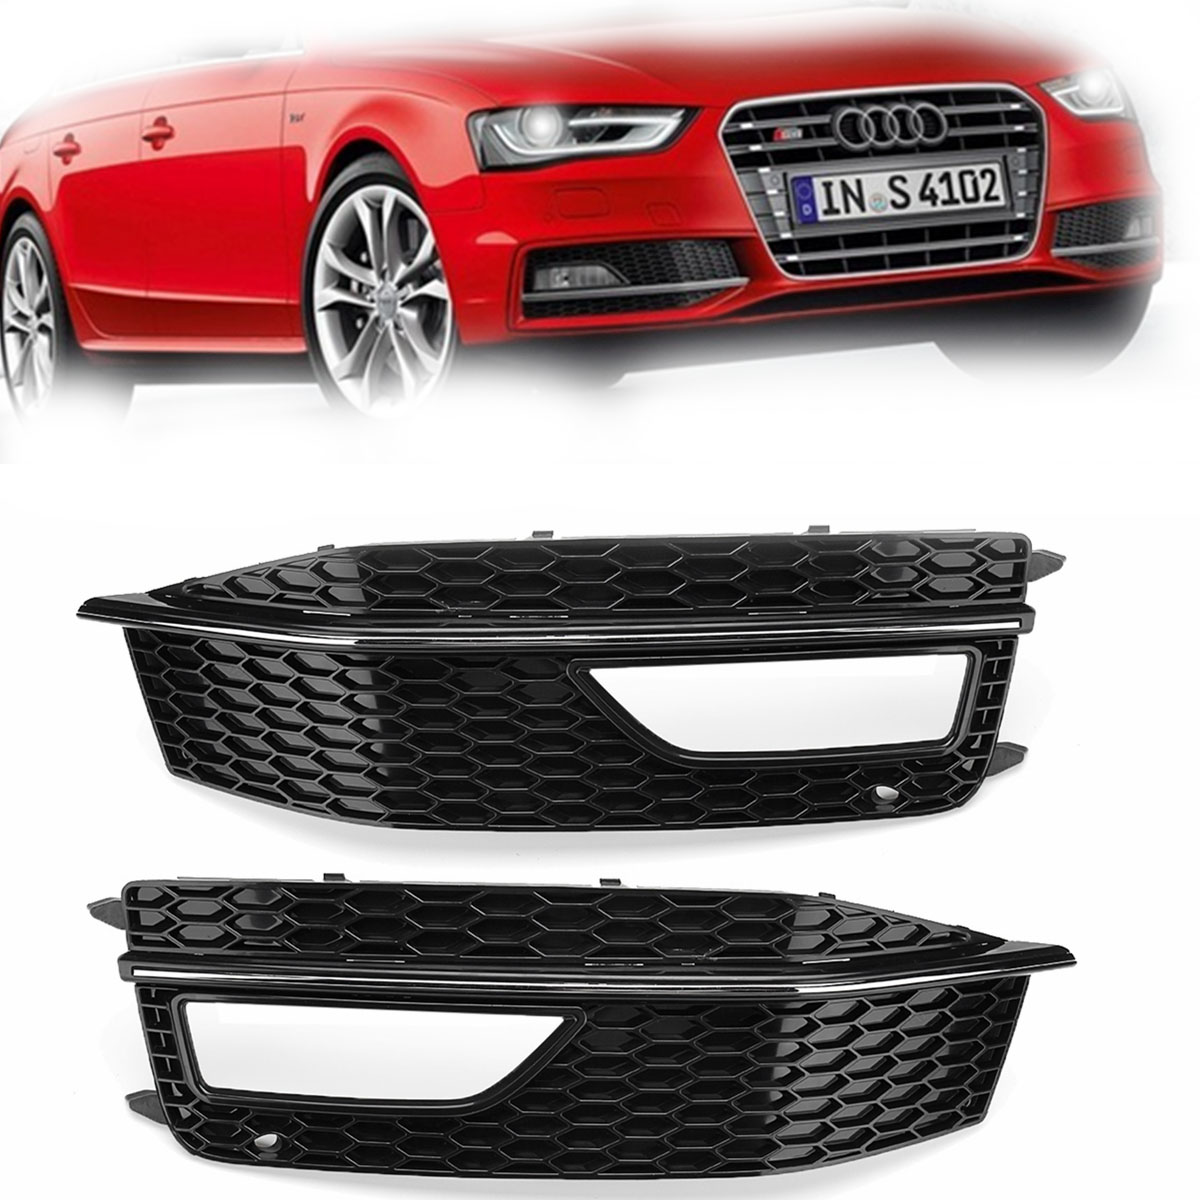 Car Left/Right Side Front Lower Bumper Fog Light Grille Cover Replacements Plastics Black For Audi A4 B8 S4 S line